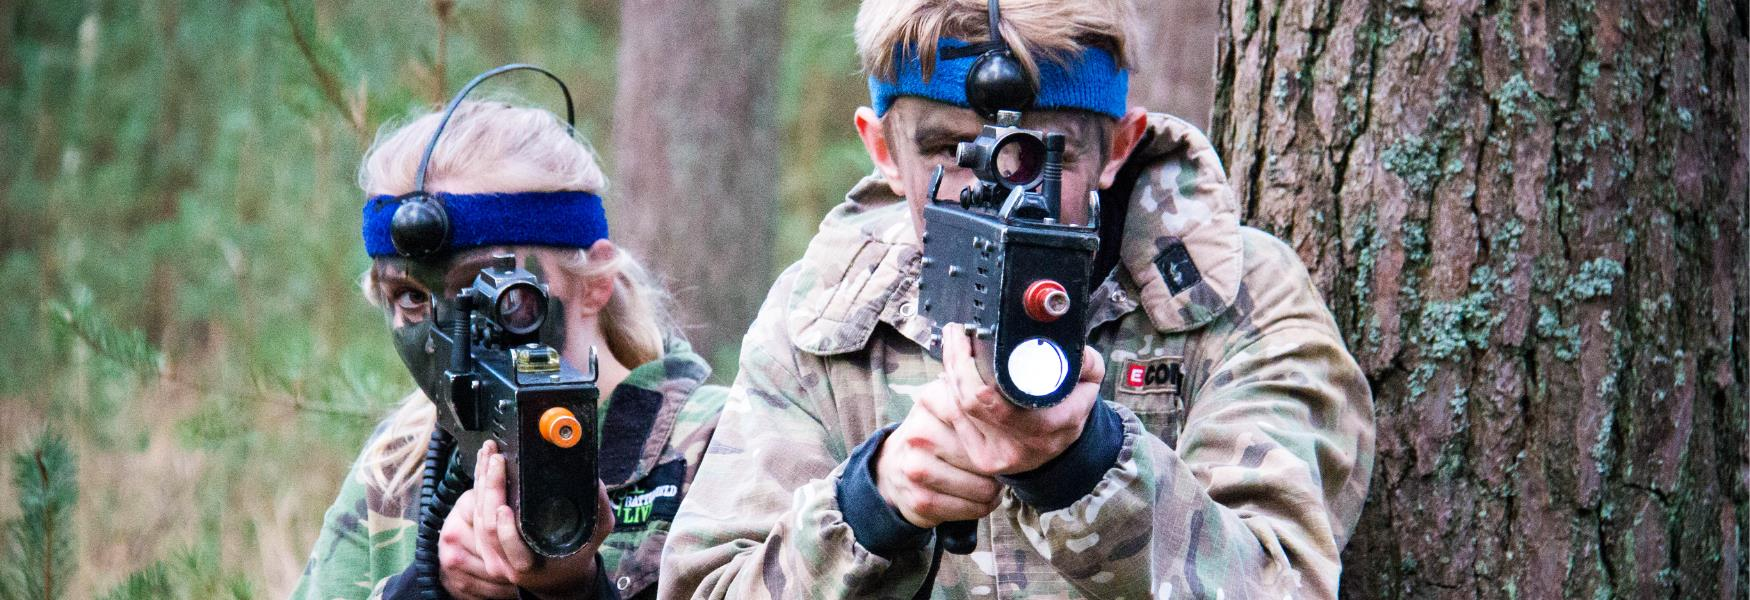 laser combat adventure activity in the new forest